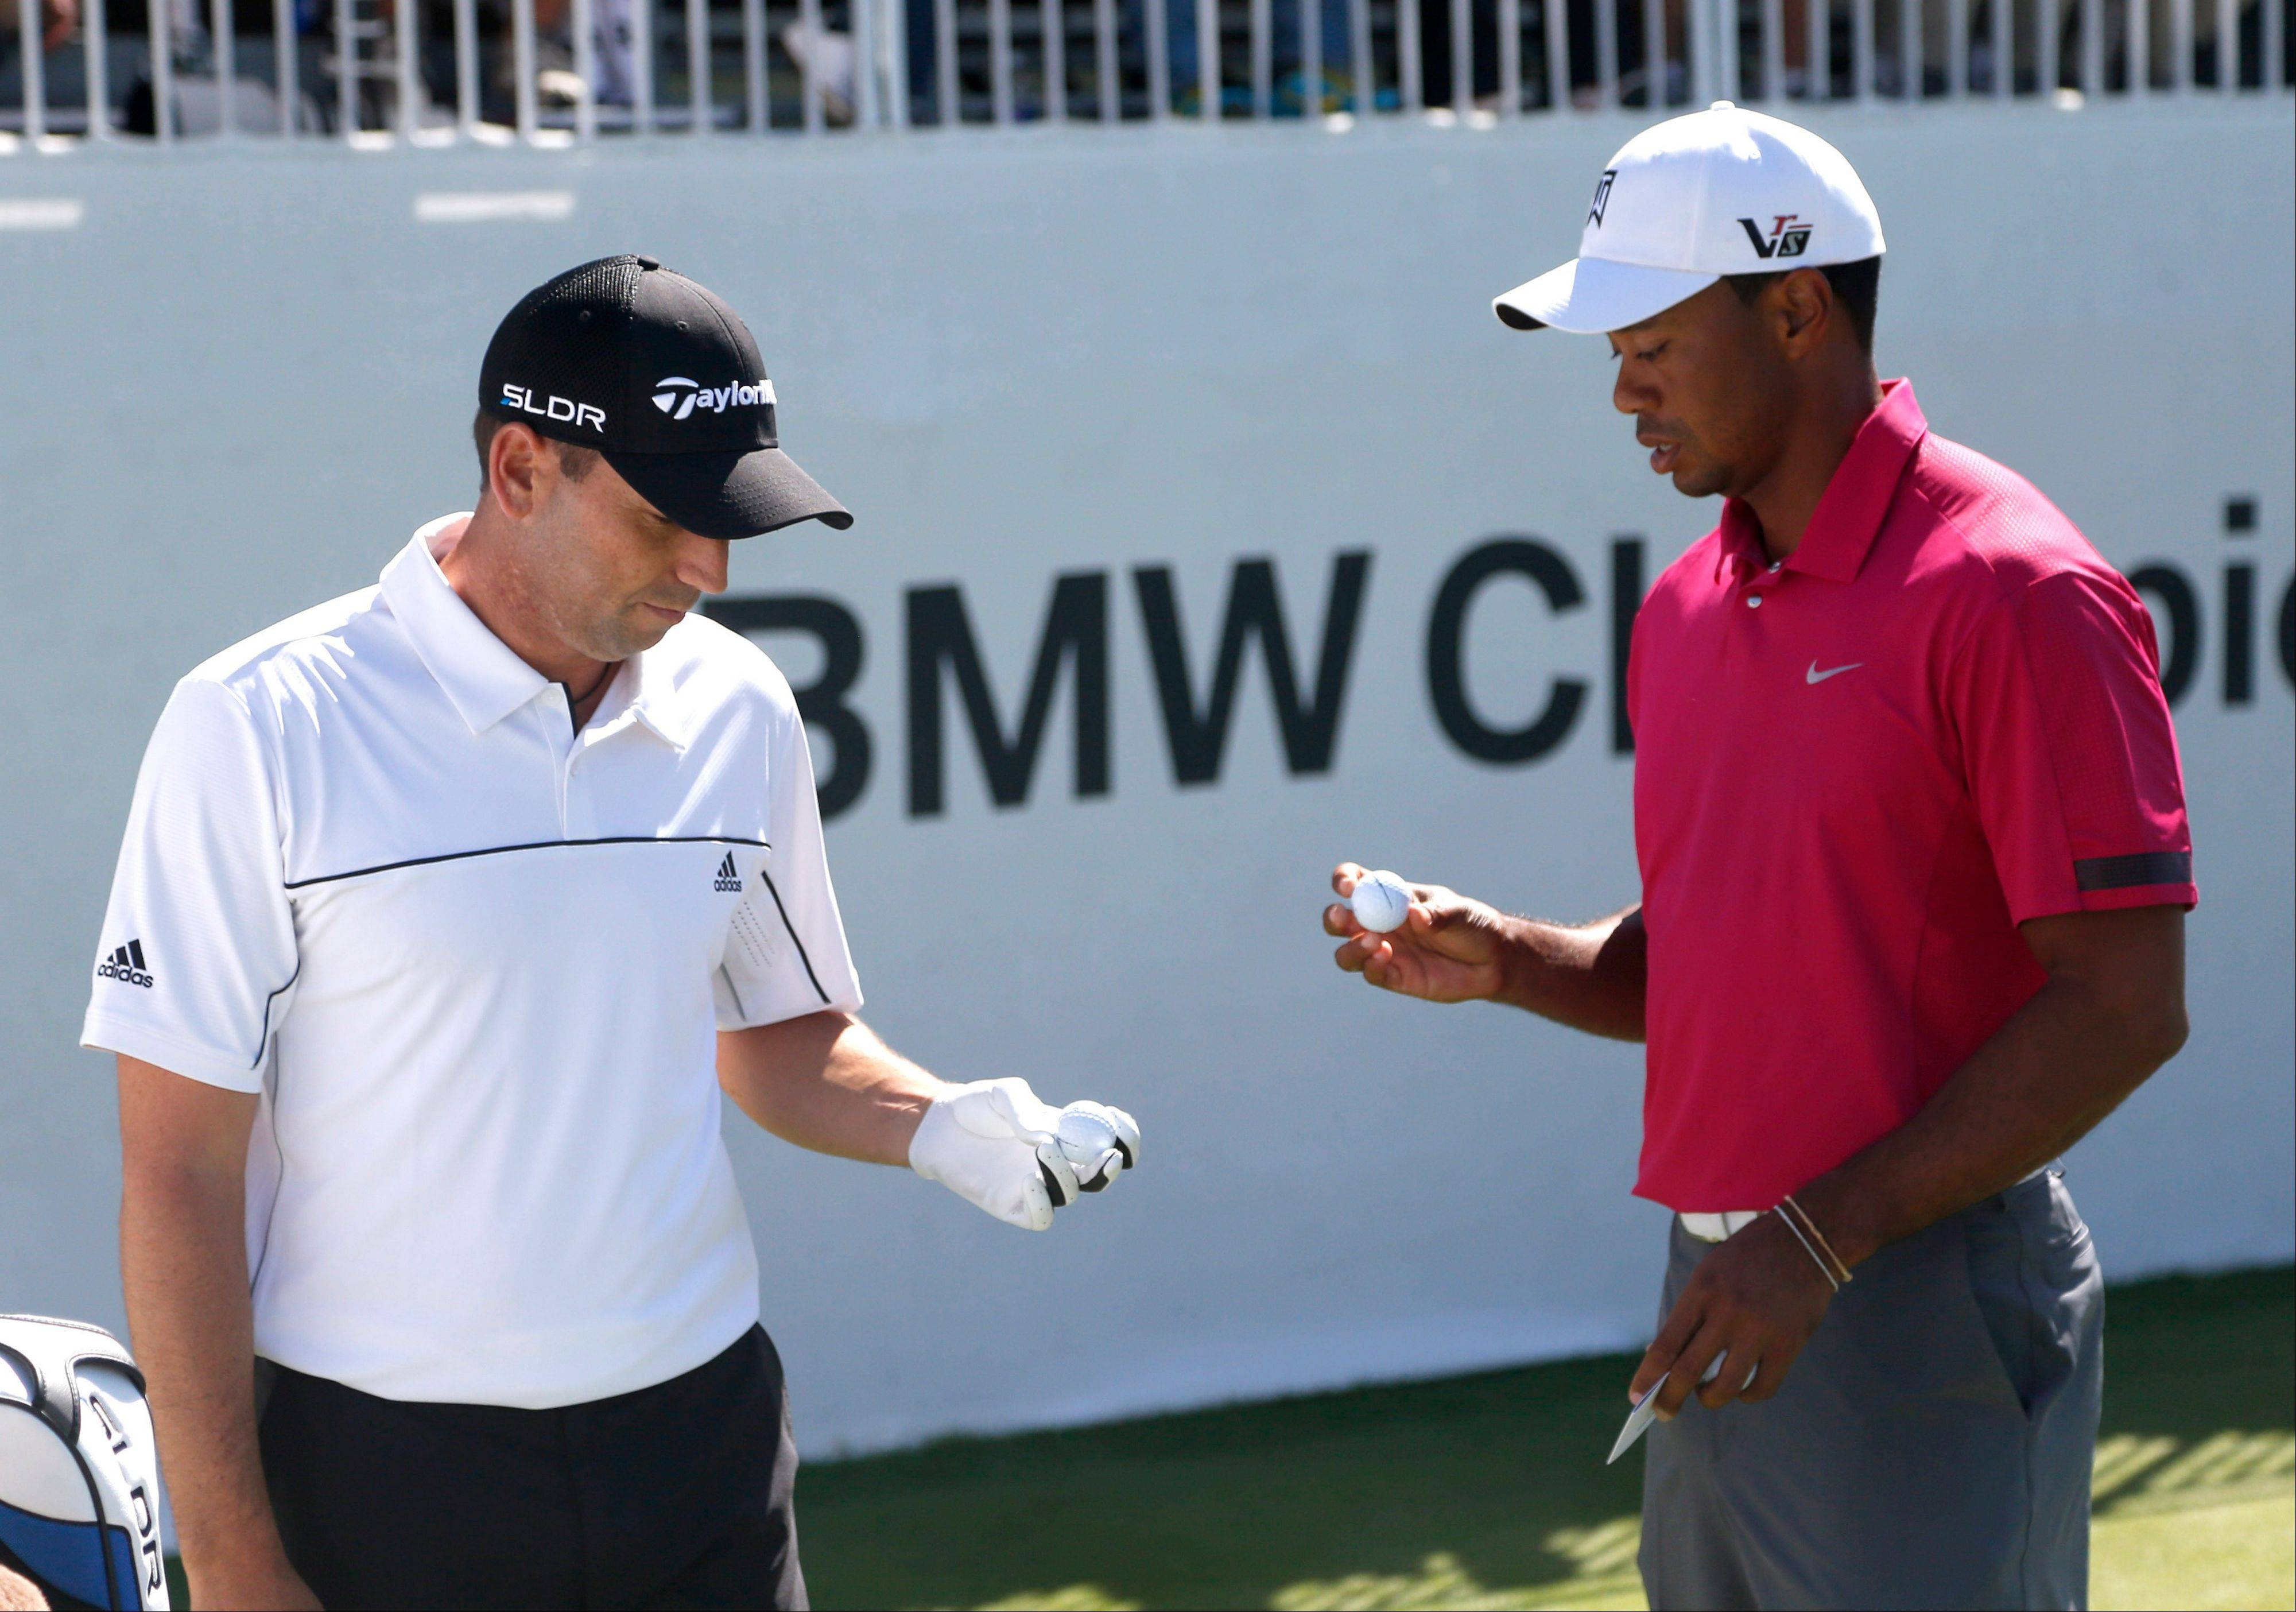 Sergio Garcia, left, and Tiger Woods check their balls during the third round of the BMW Championship golf tournament at Conway Farms Golf Club in Lake Forest, Ill., Saturday, Sept. 14, 2013.